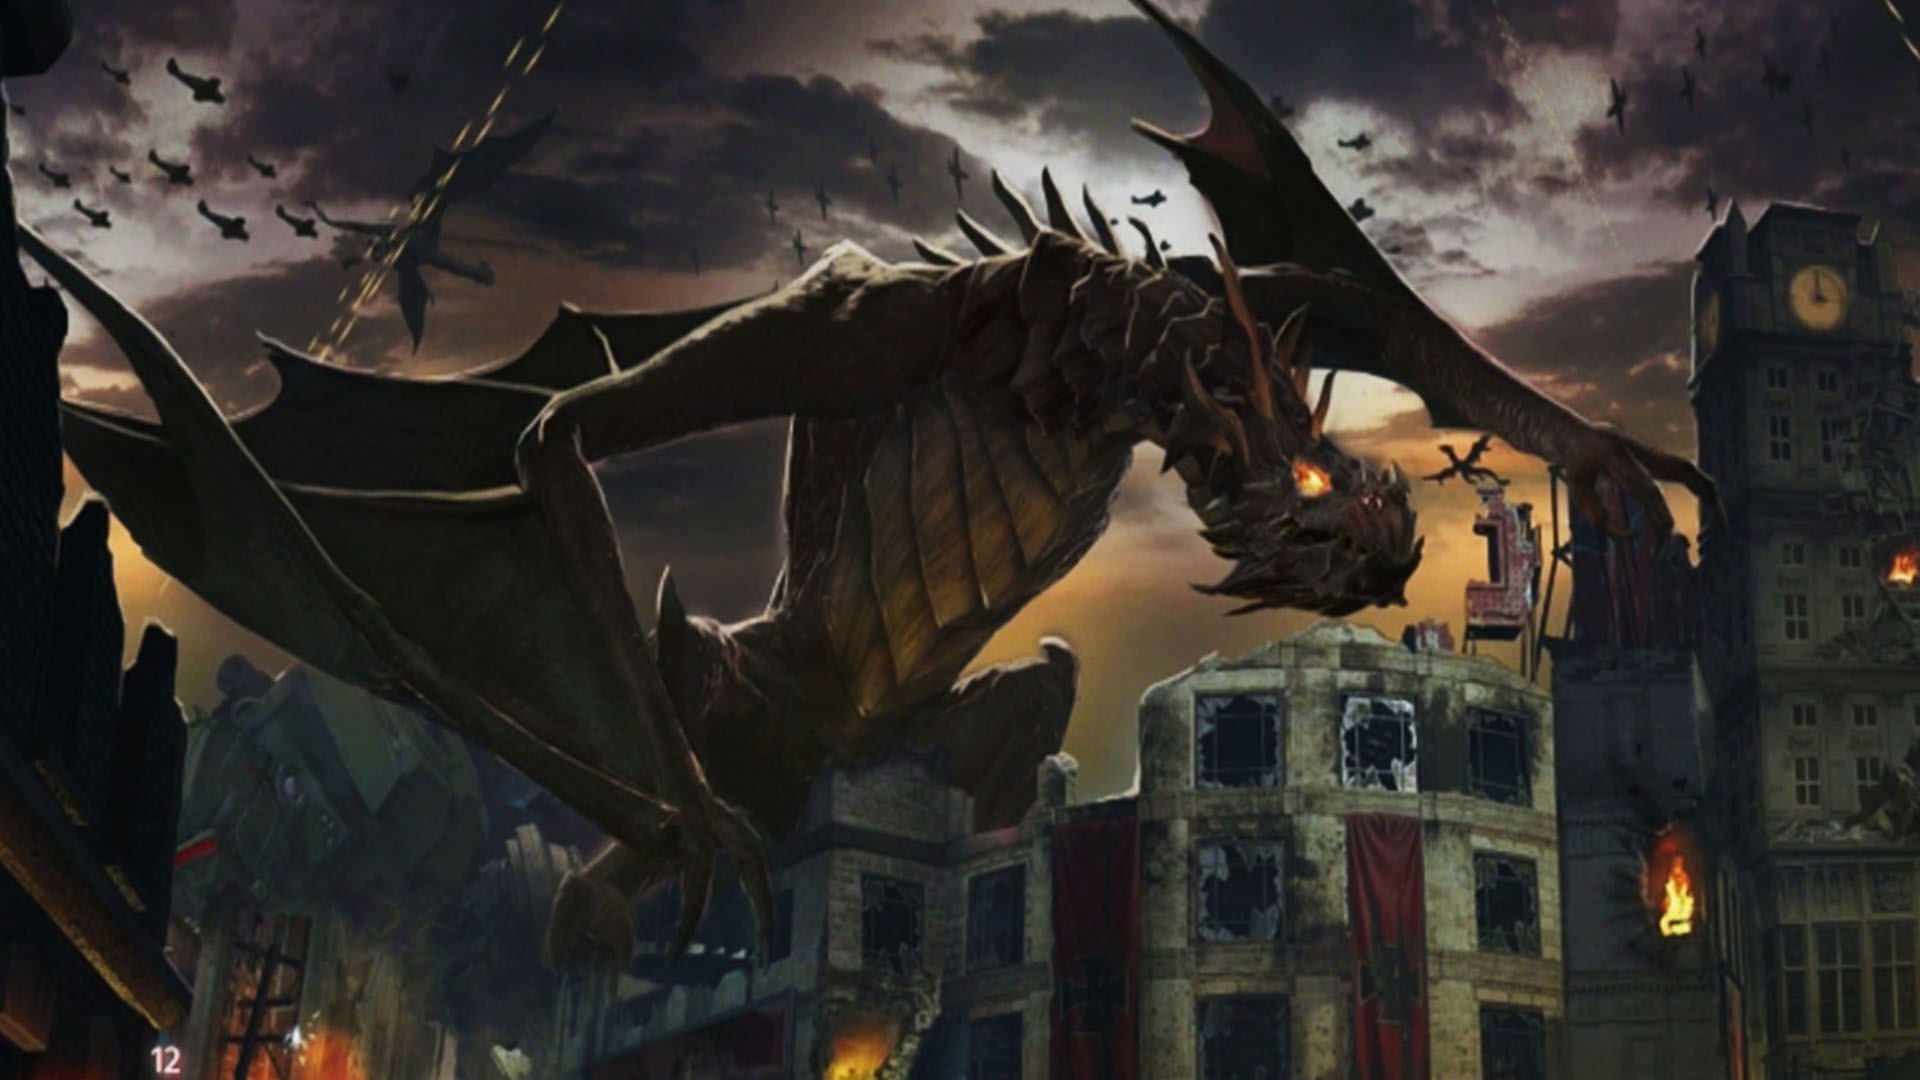 The Latest Black Ops 3 Zombies DLC Map Features Dragons and Blood on